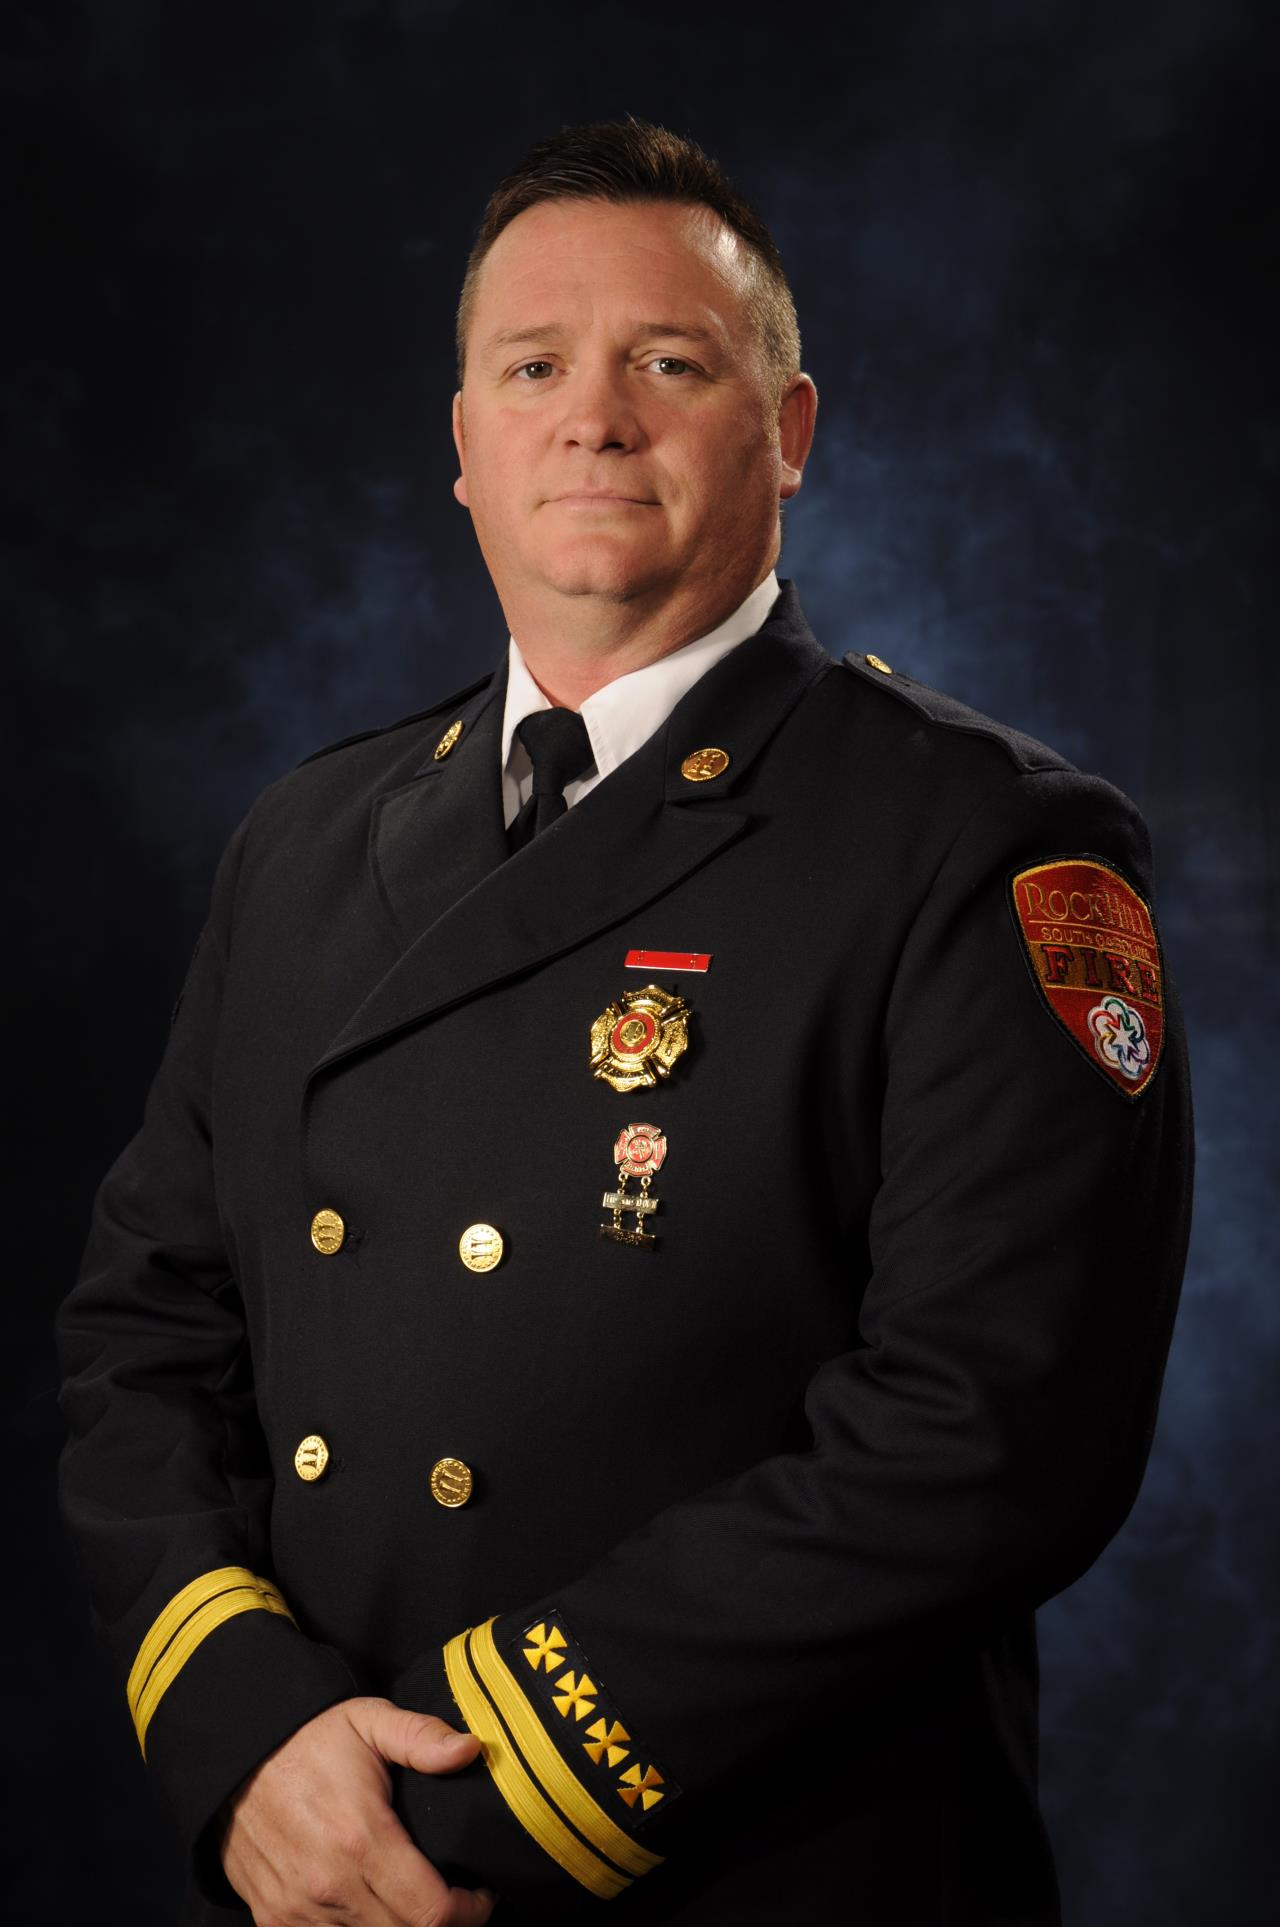 Battalion Chief                           Trey Hovis